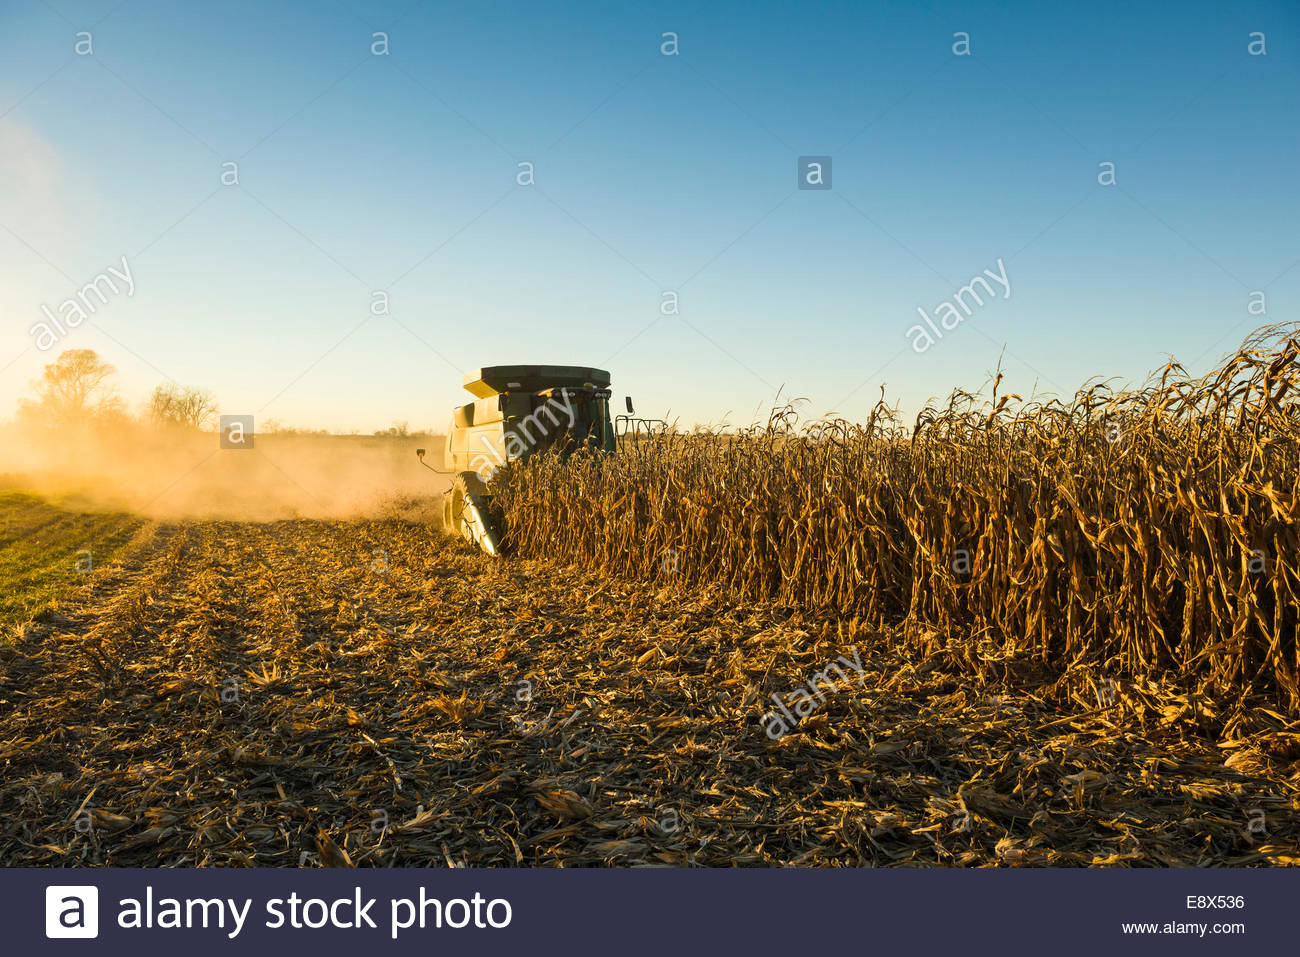 A Farmer Harvests Yellow Grain Corn With His John Deere Combine At Dusk In Southern Iowa